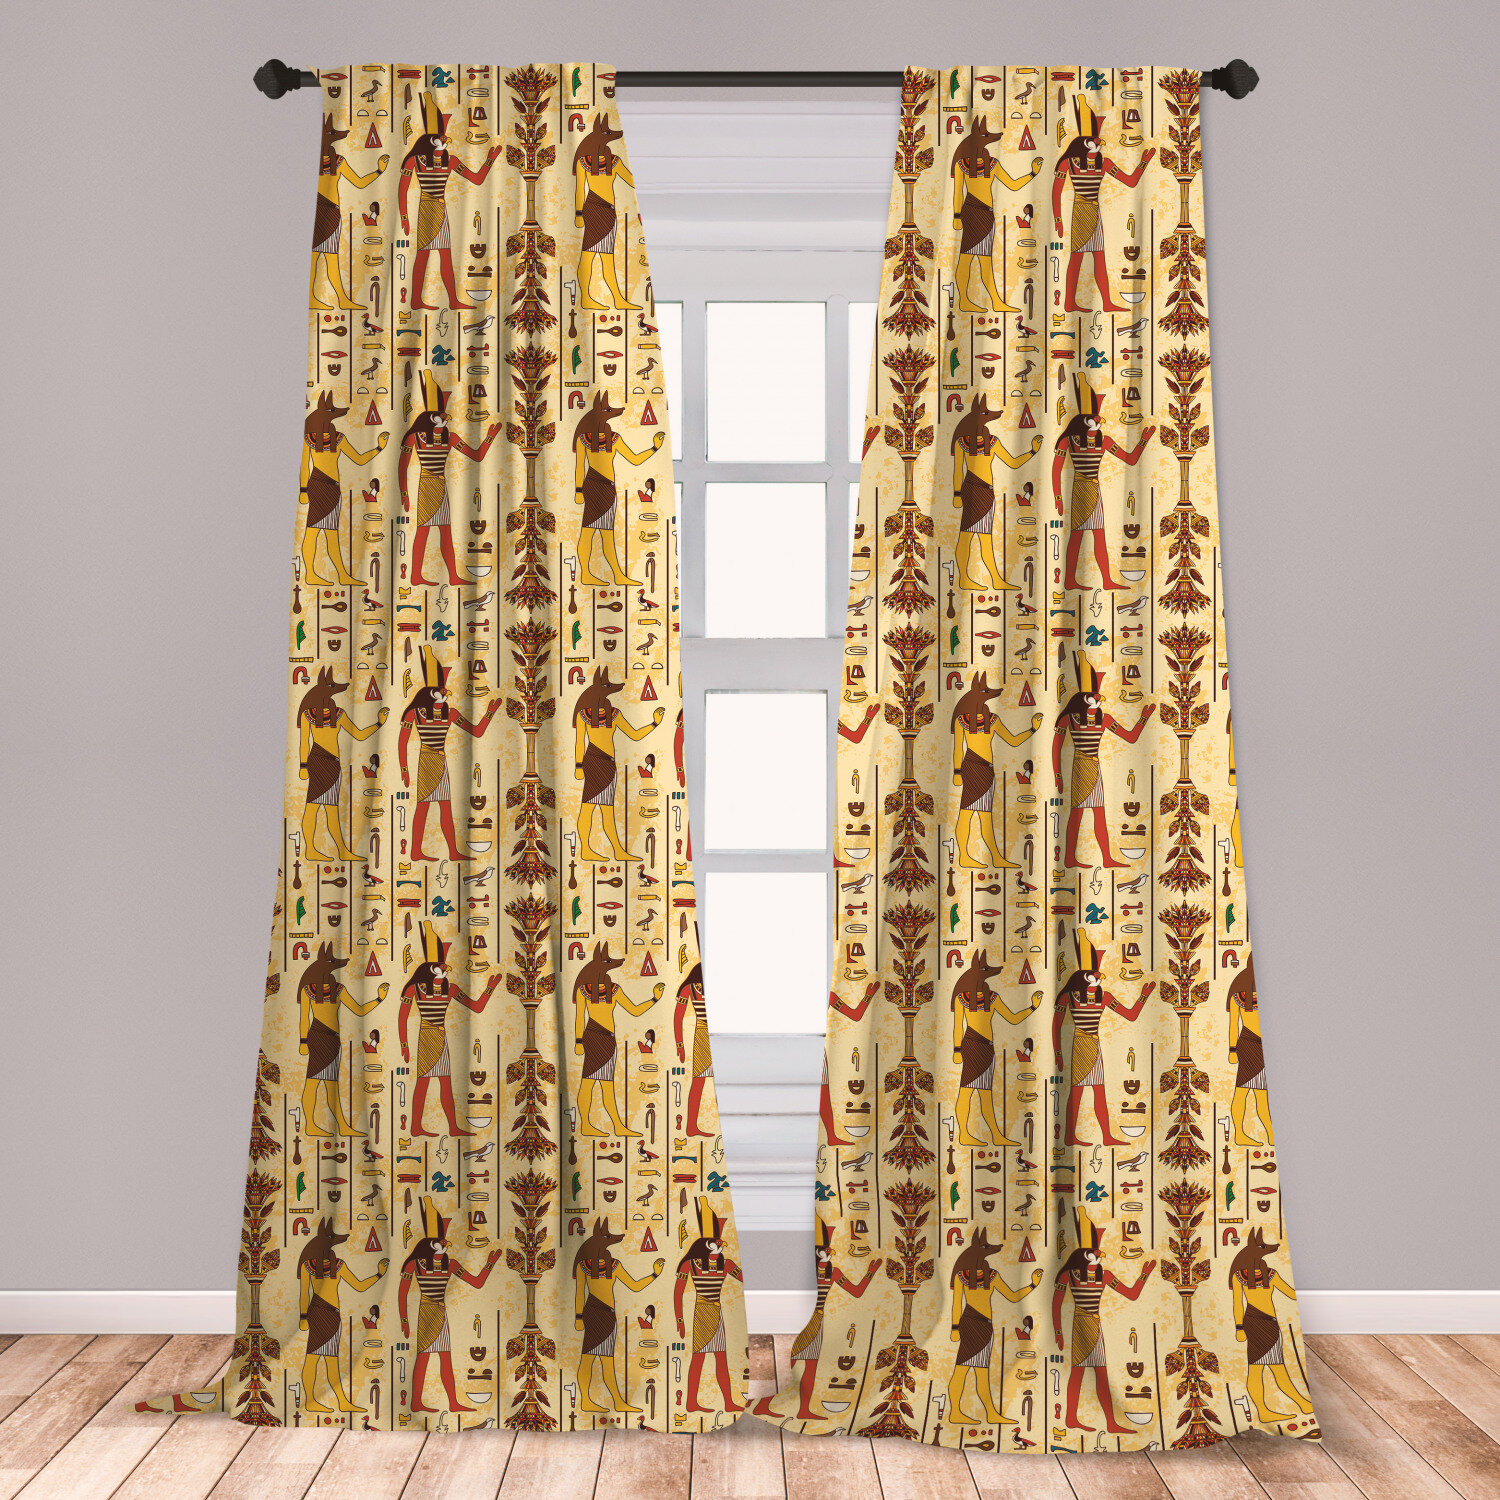 East Urban Home Ambesonne Egyptian 2 Panel Curtain Set Grunge Aged Paper Style Backdrop With Retro Characters And Hieroglyphs Lightweight Window Treatment Living Room Bedroom Decor 56 X 63 Multicolor Wayfair